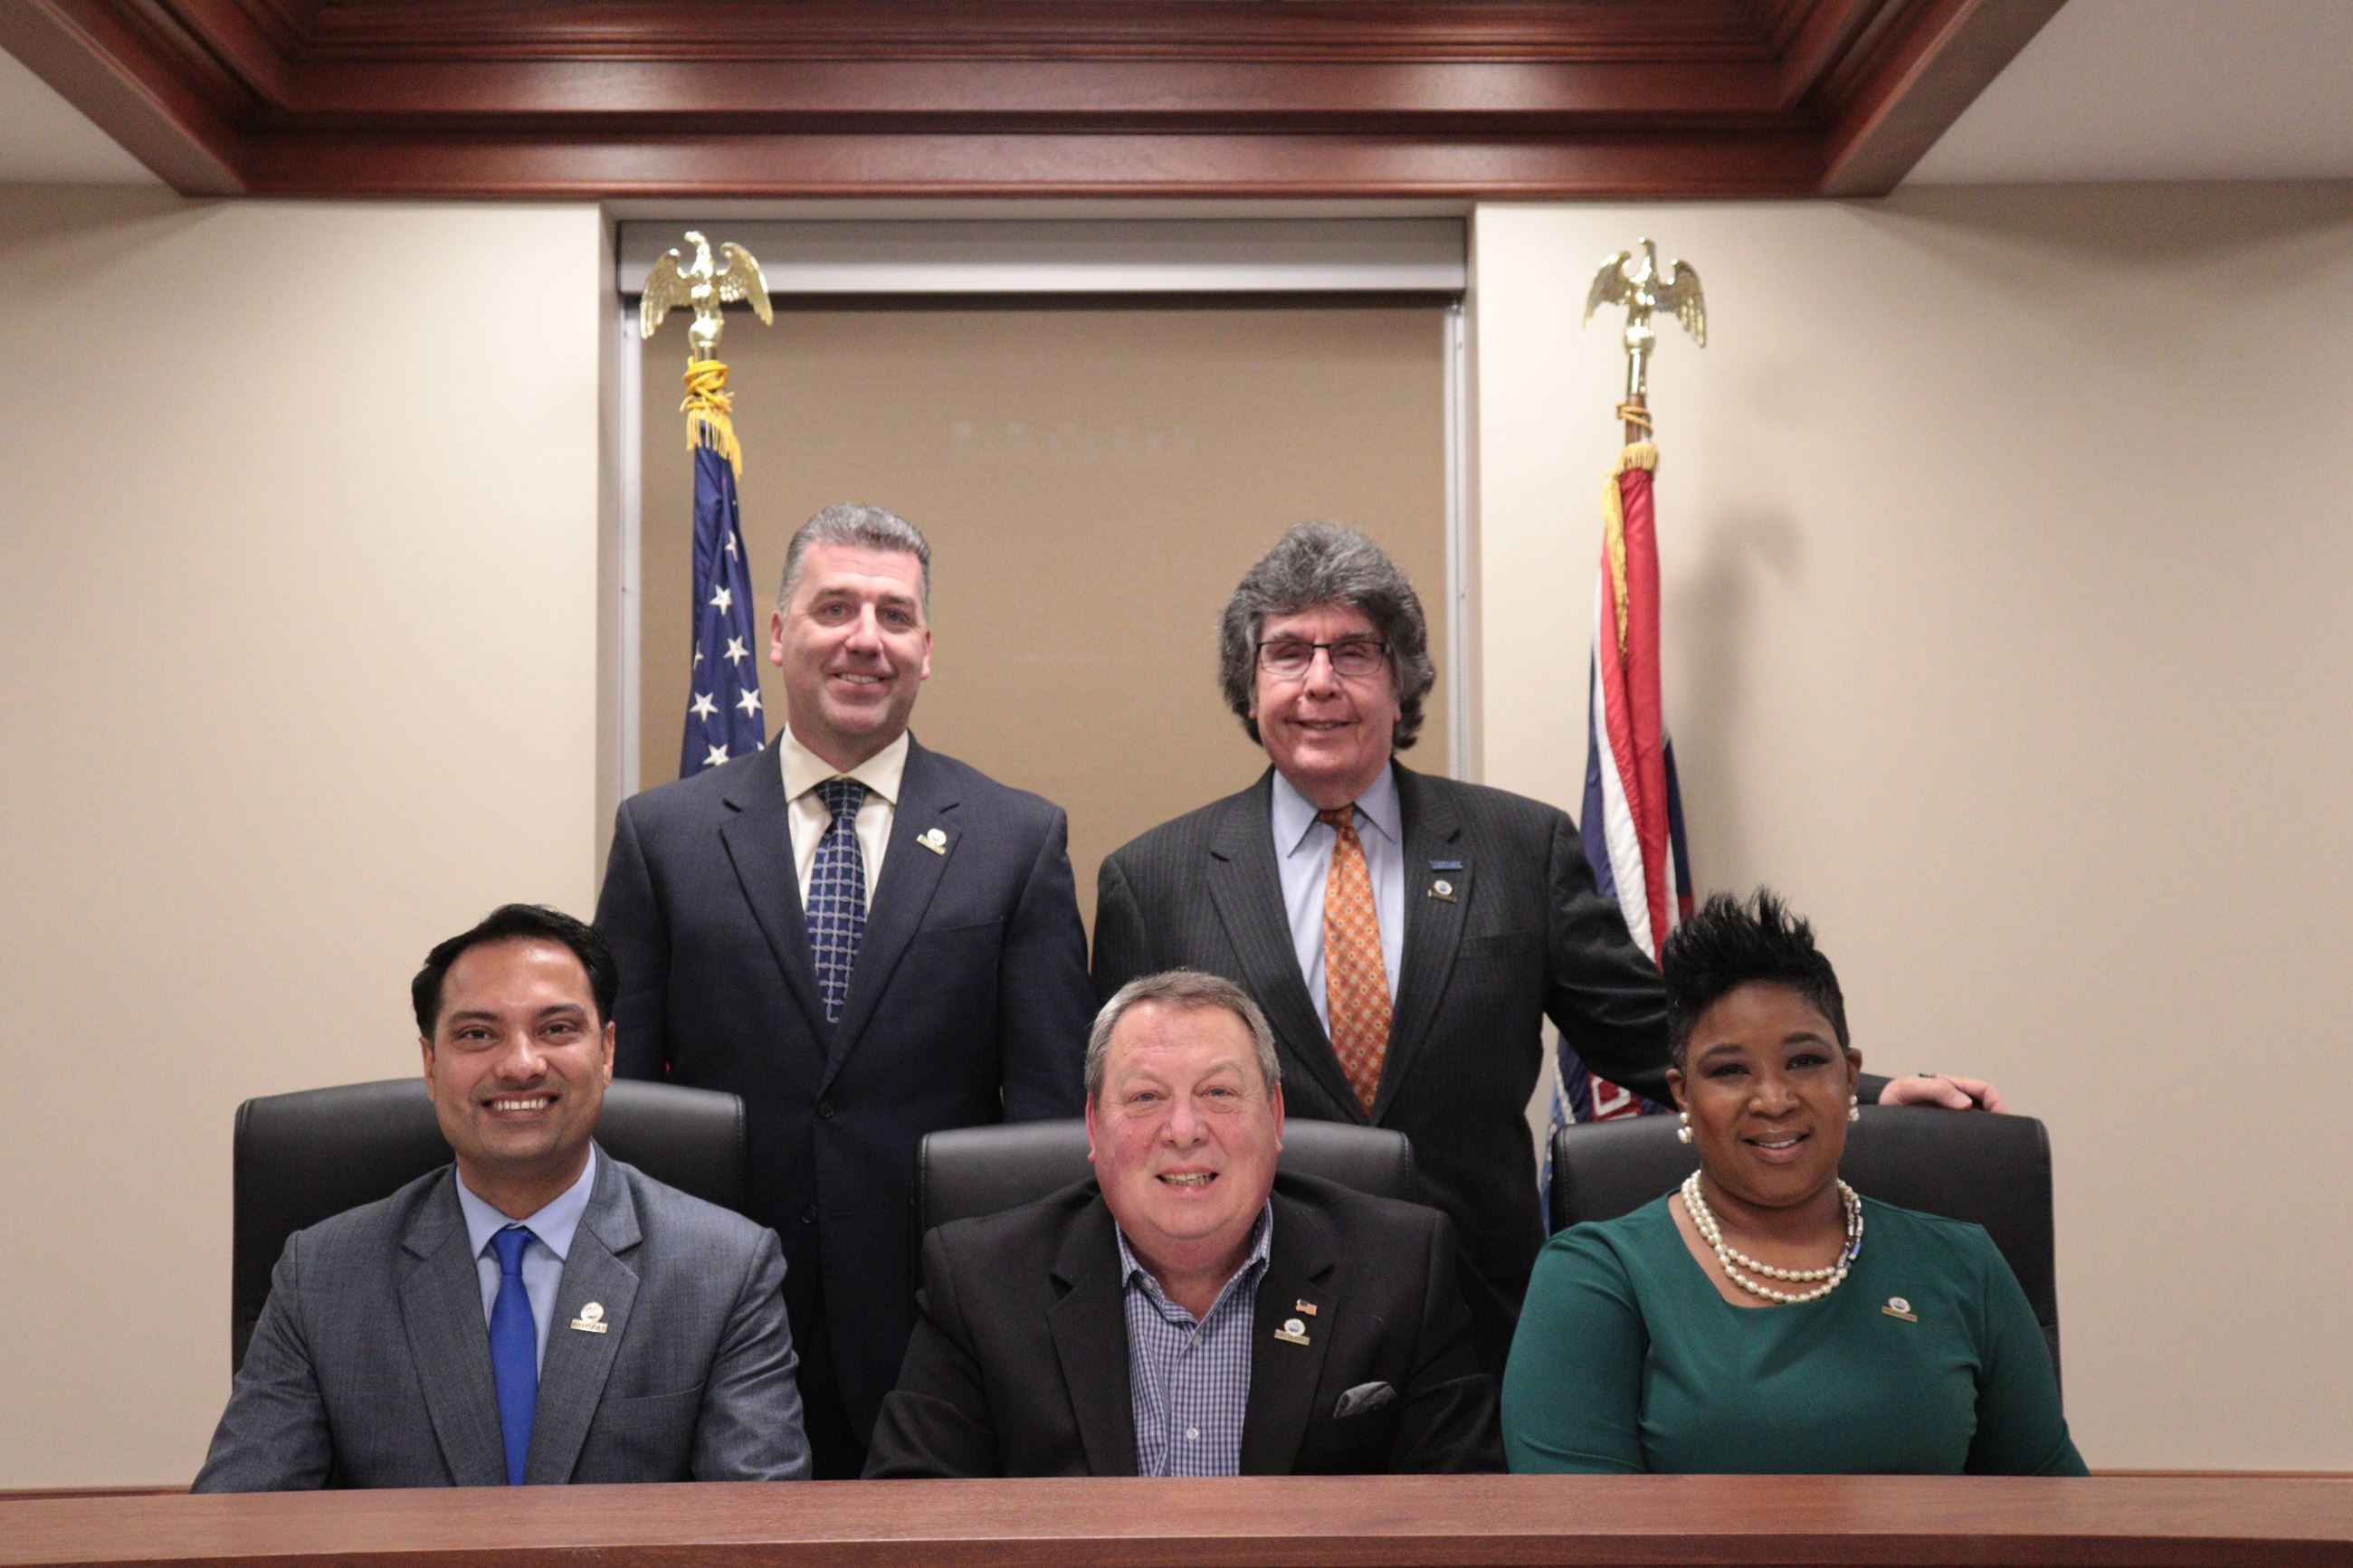 2019 Bulington County Board of Chosen Freeholders